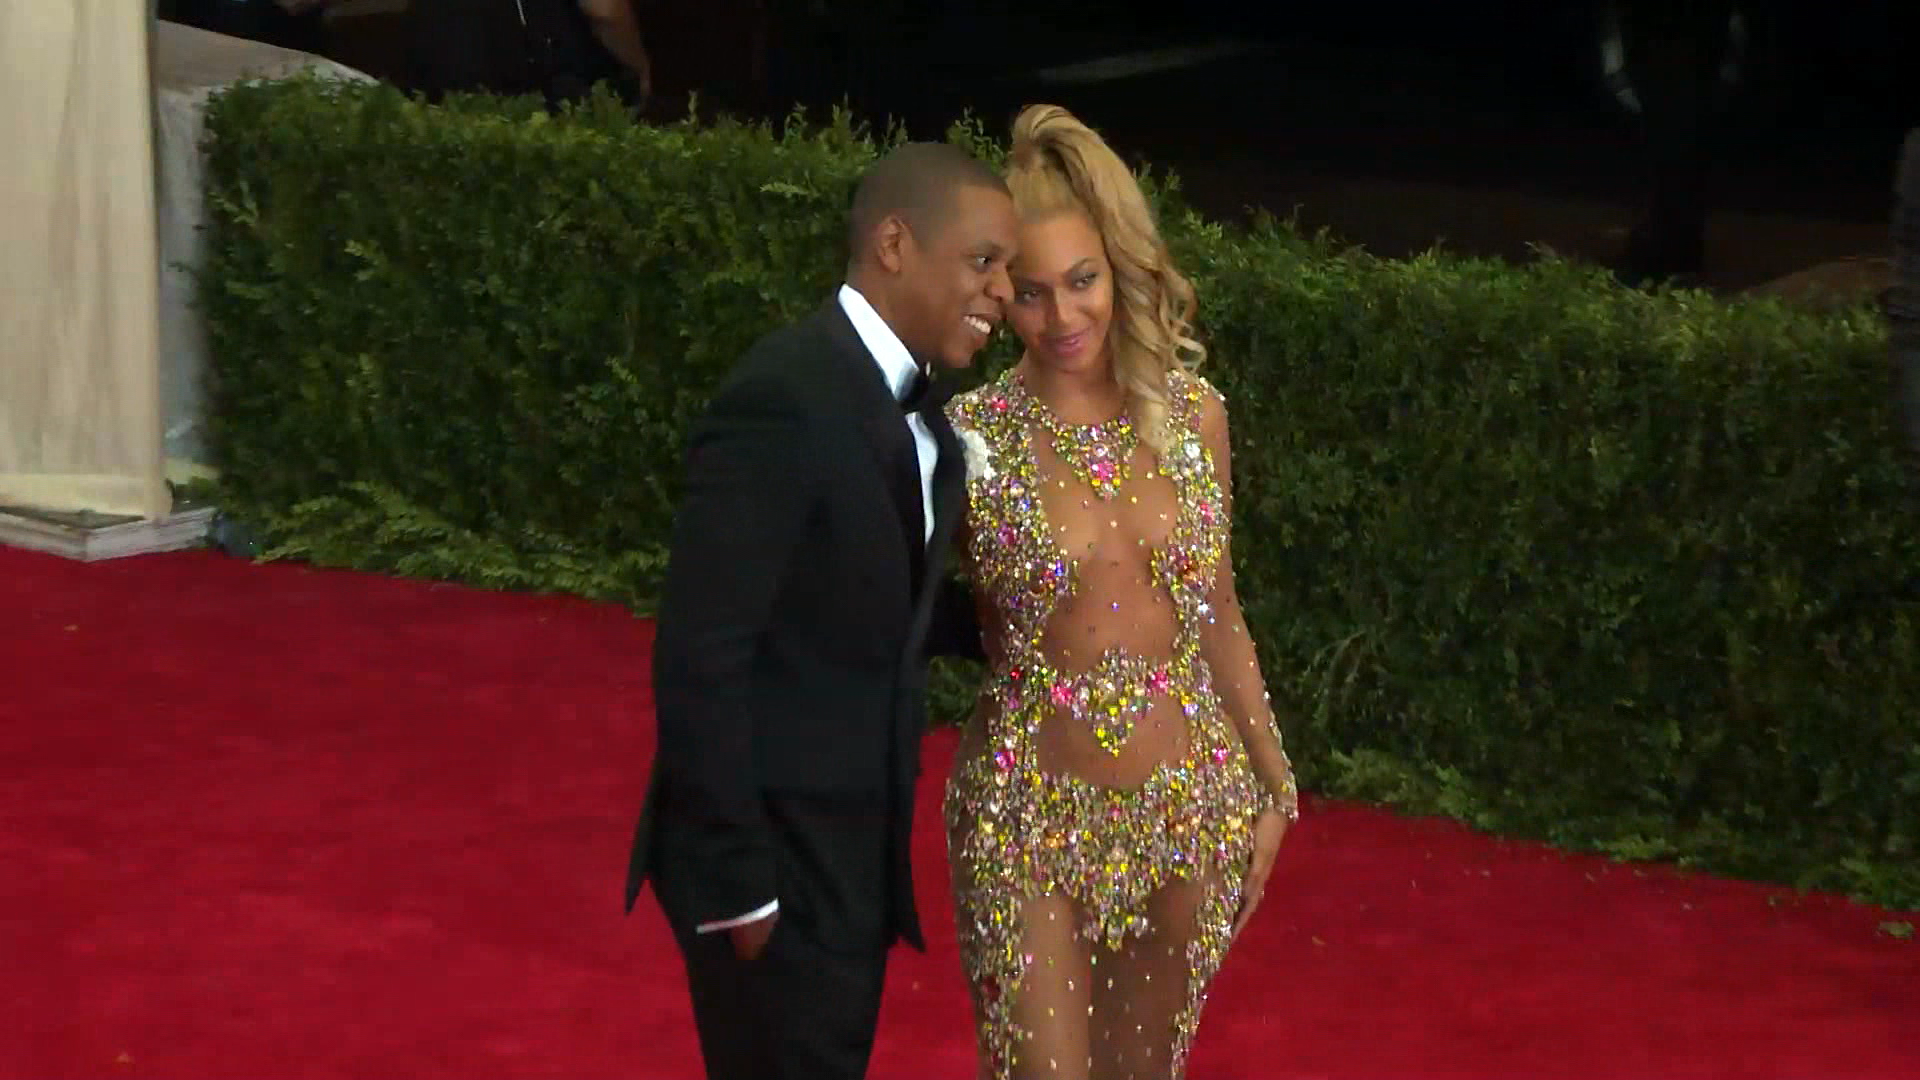 Jay-Z, Beyonce And Kanye West Step Out At Star-Studded Italian Wedding